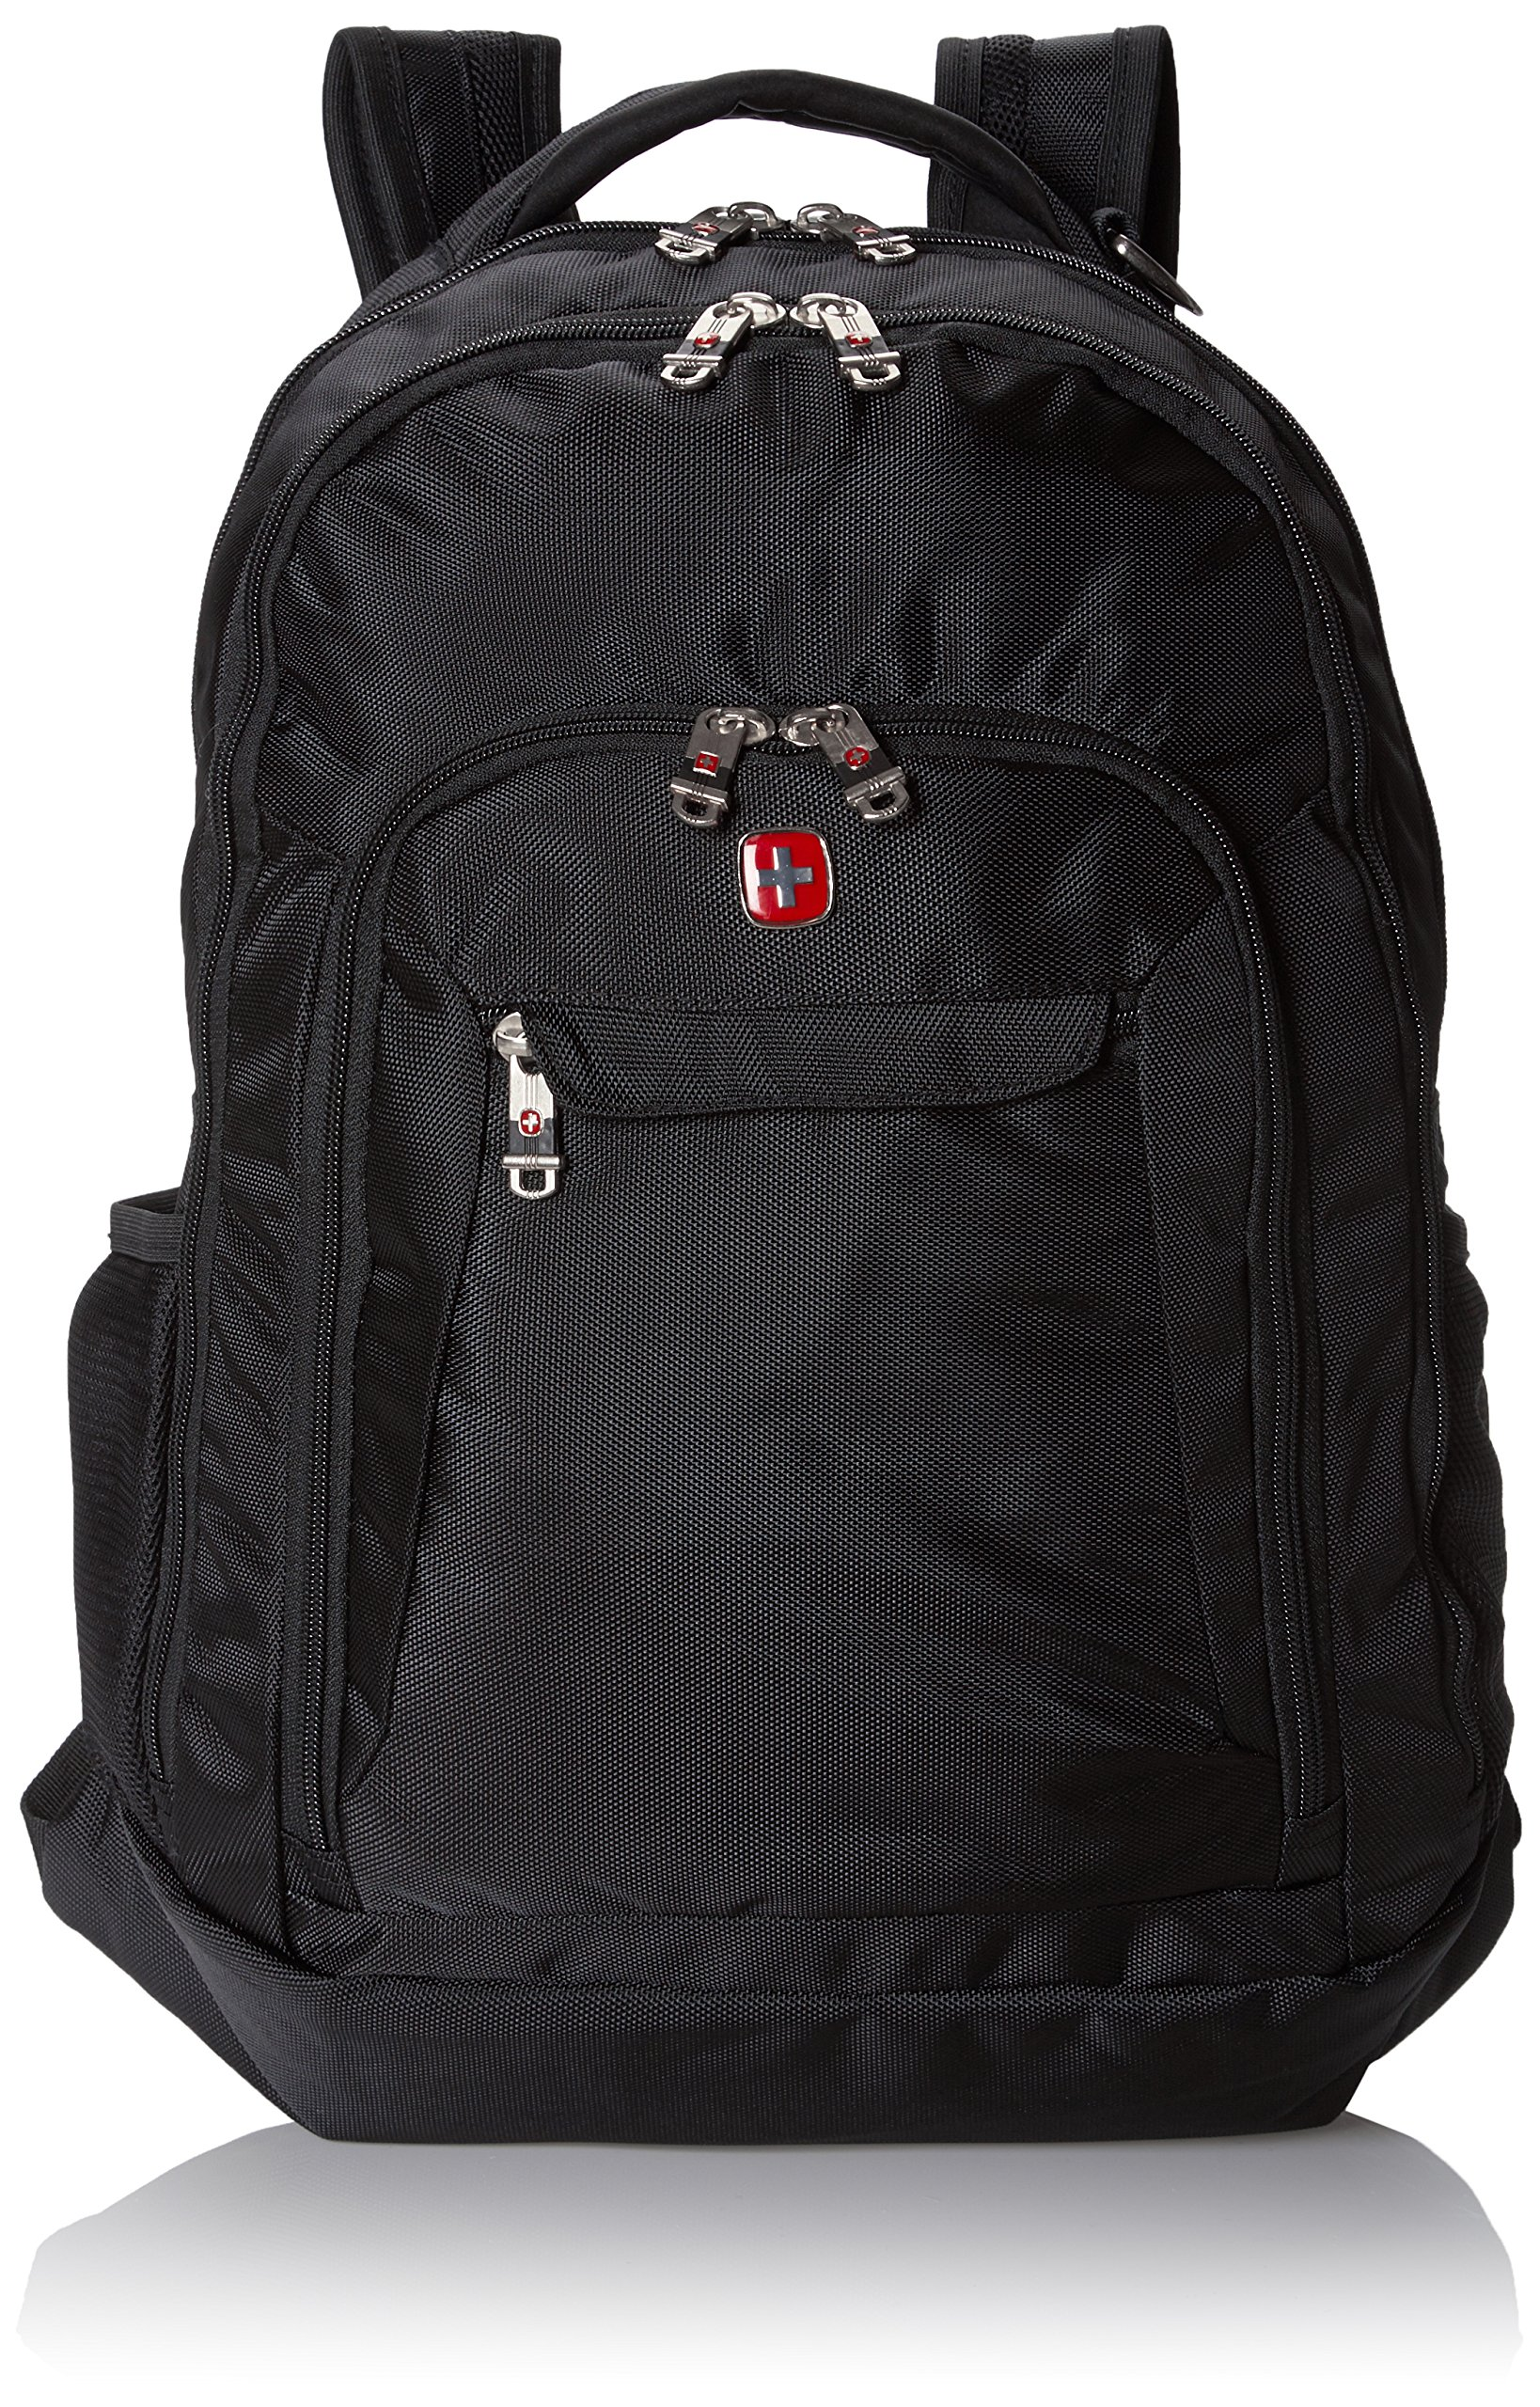 Swiss Gear SA9998 Black Laptop Backpack - Fits Most 15 Inch Laptops and Tablets by Swiss Gear